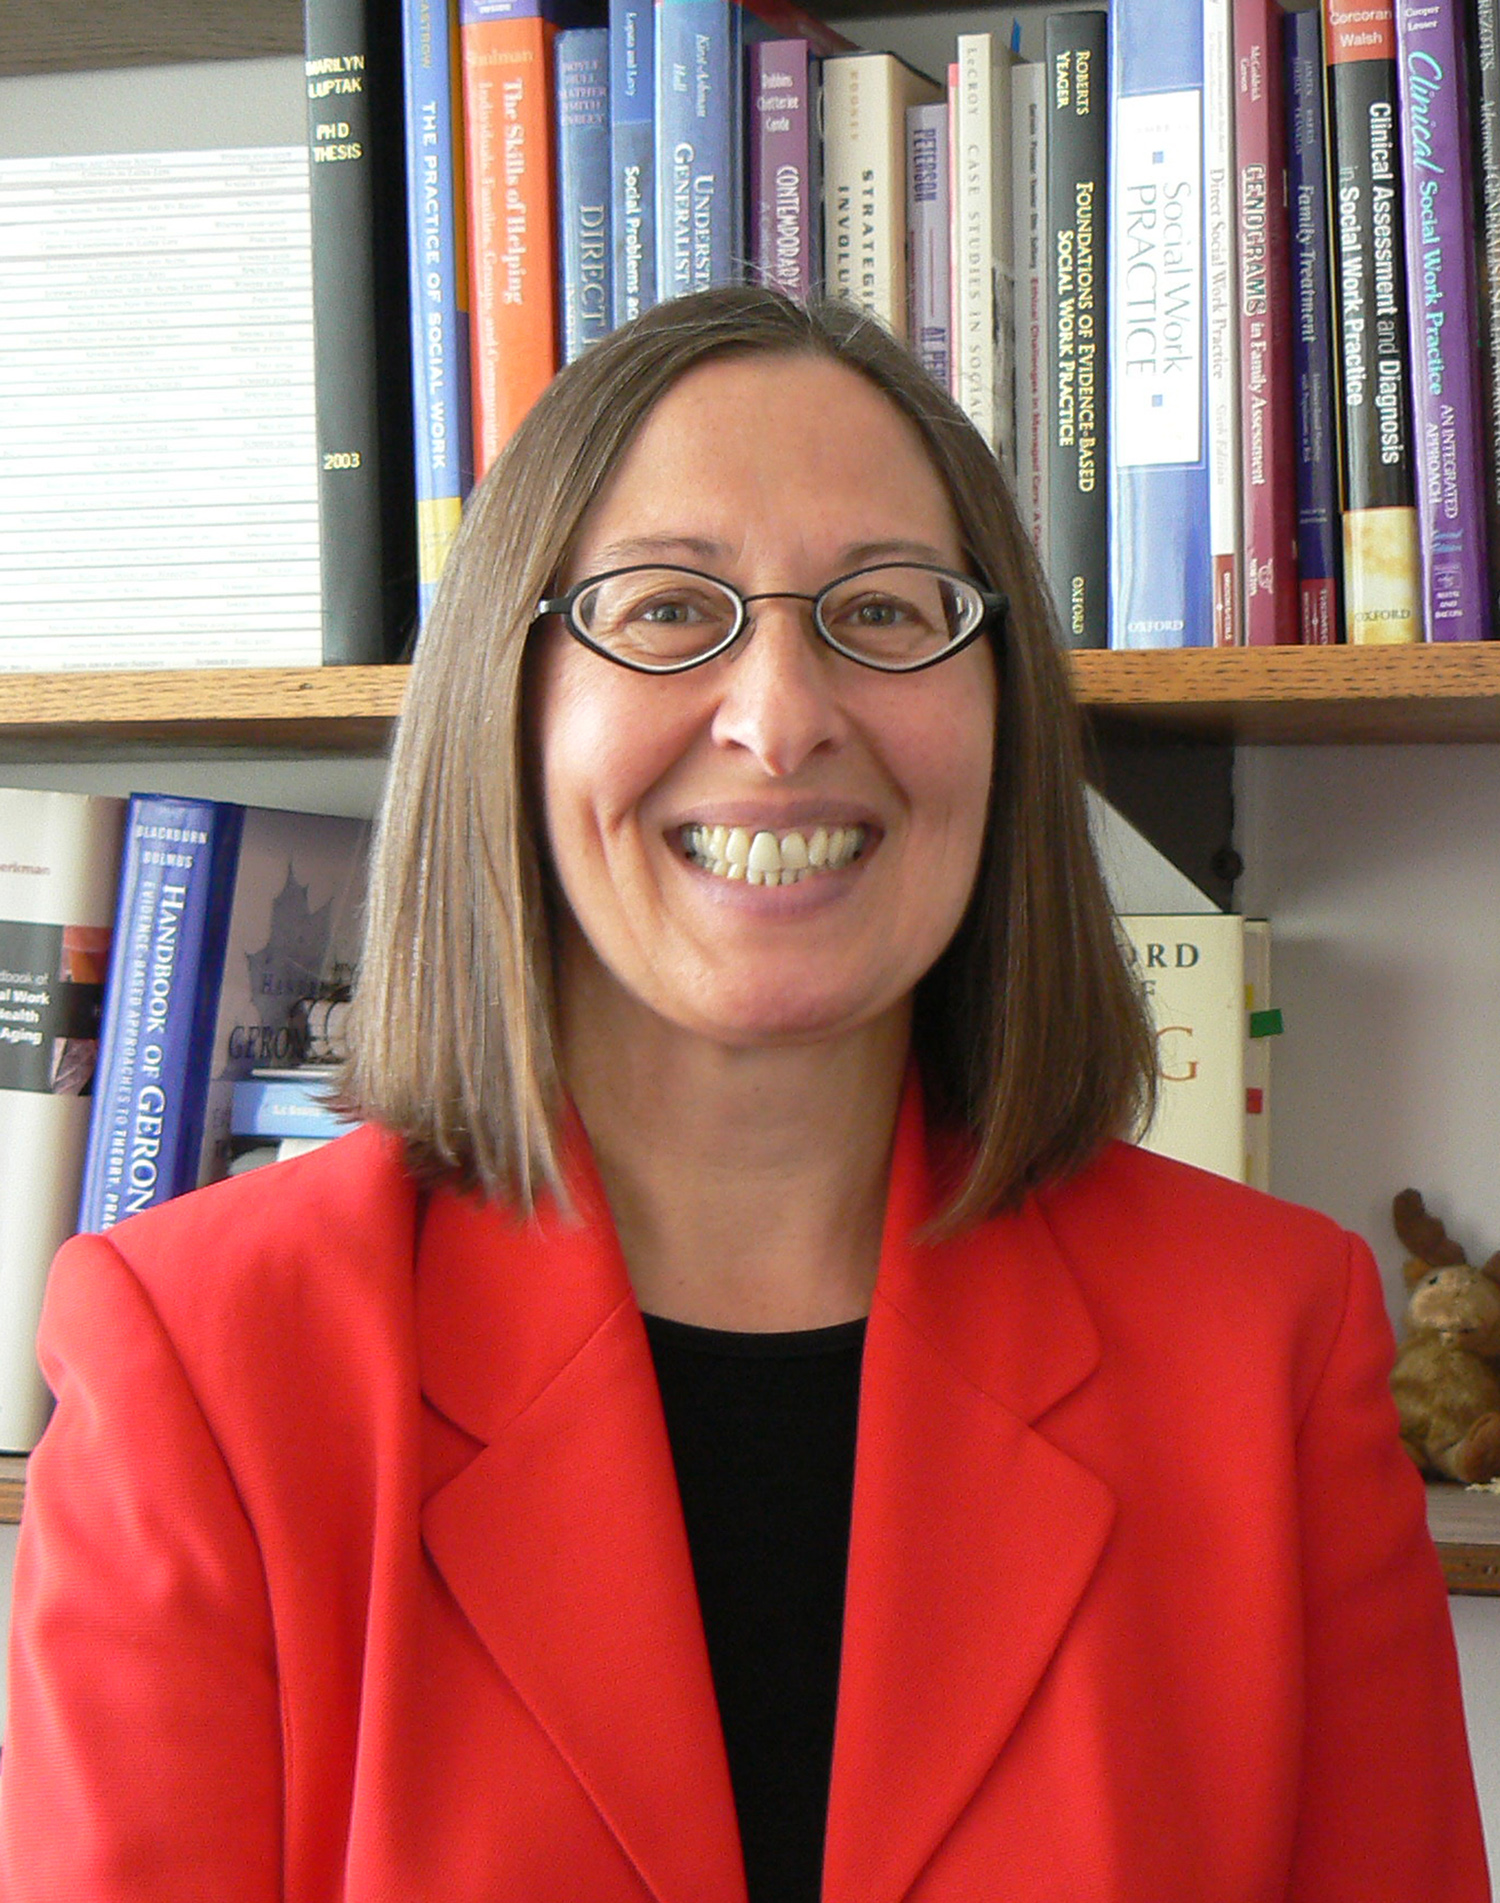 Dr. Marilyn Luptak will serve as the next Belle S. Spafford Endowed Chair